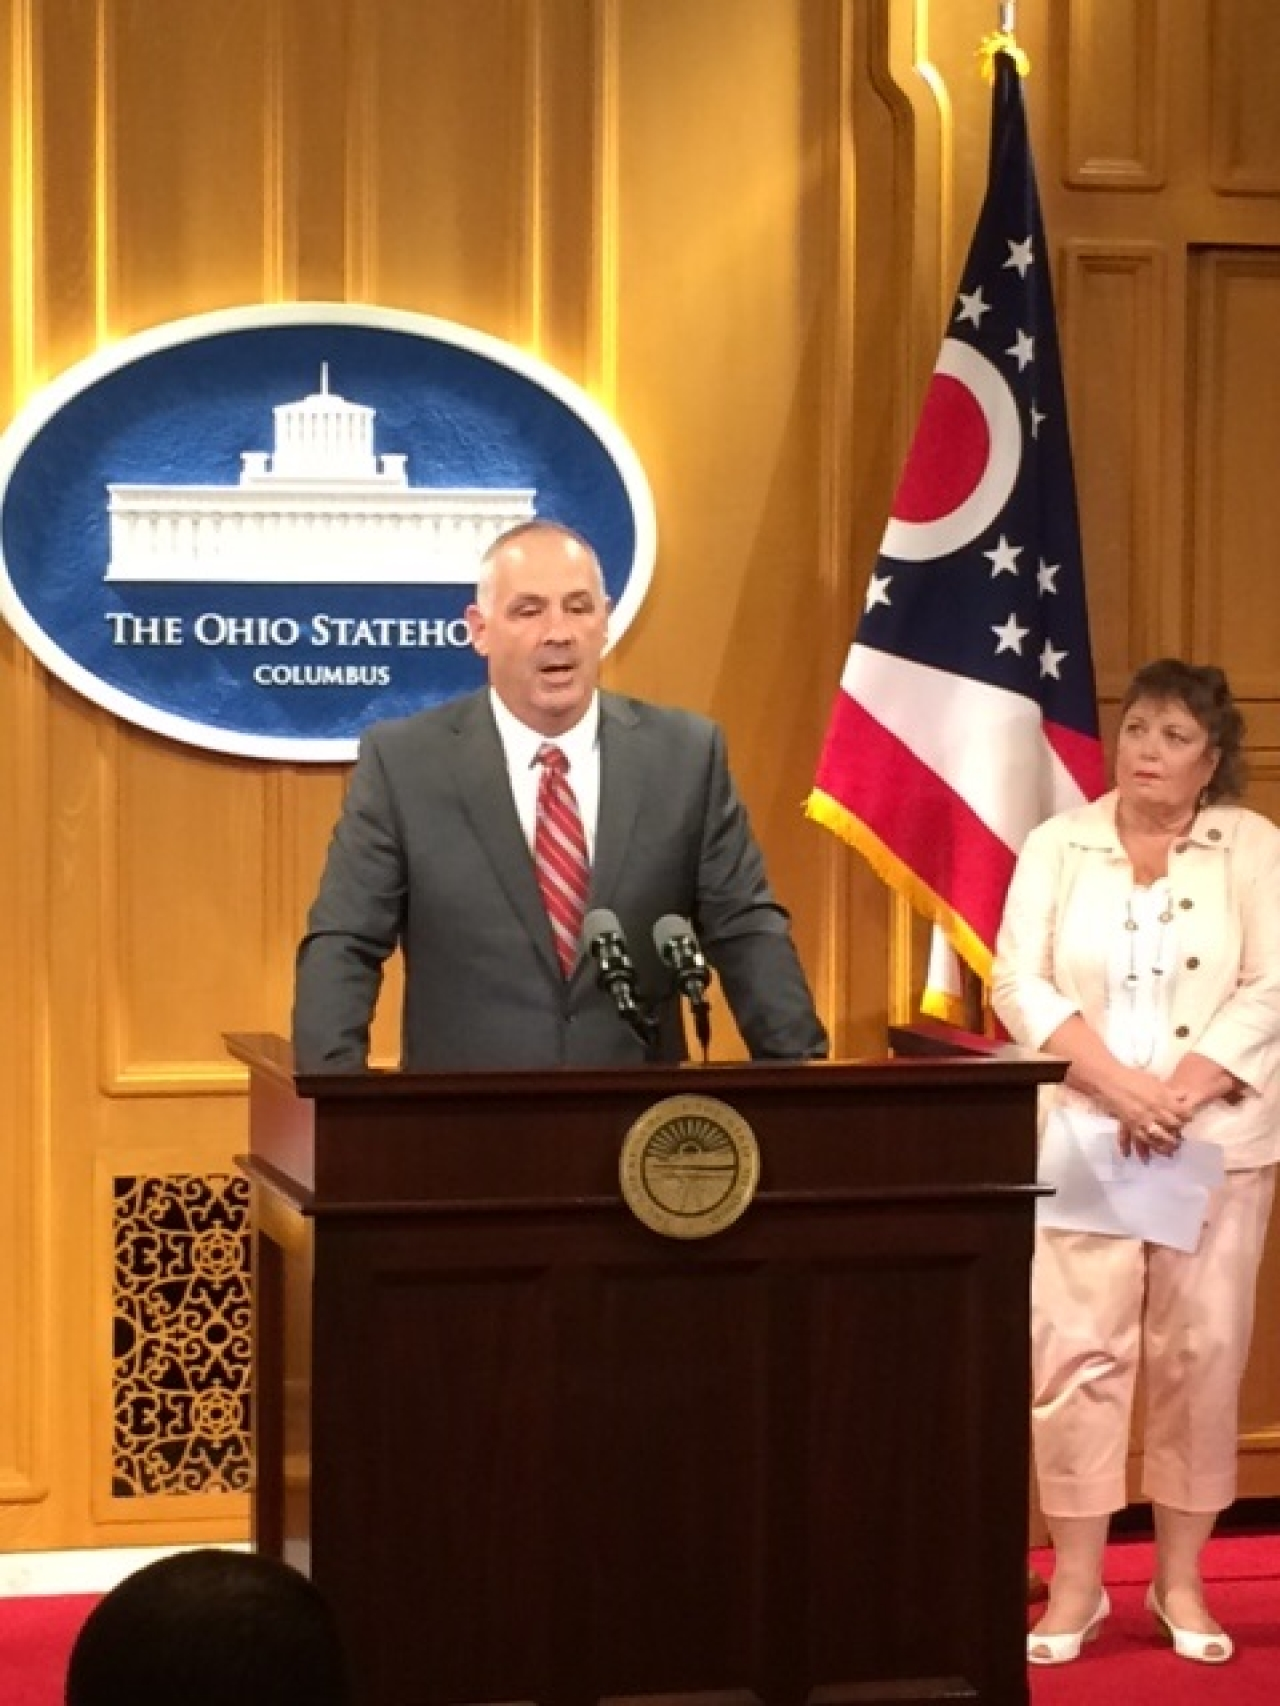 Reps. Huffman, Grossman Discuss Upcoming Legislation to Upgrade Statewide Trauma System